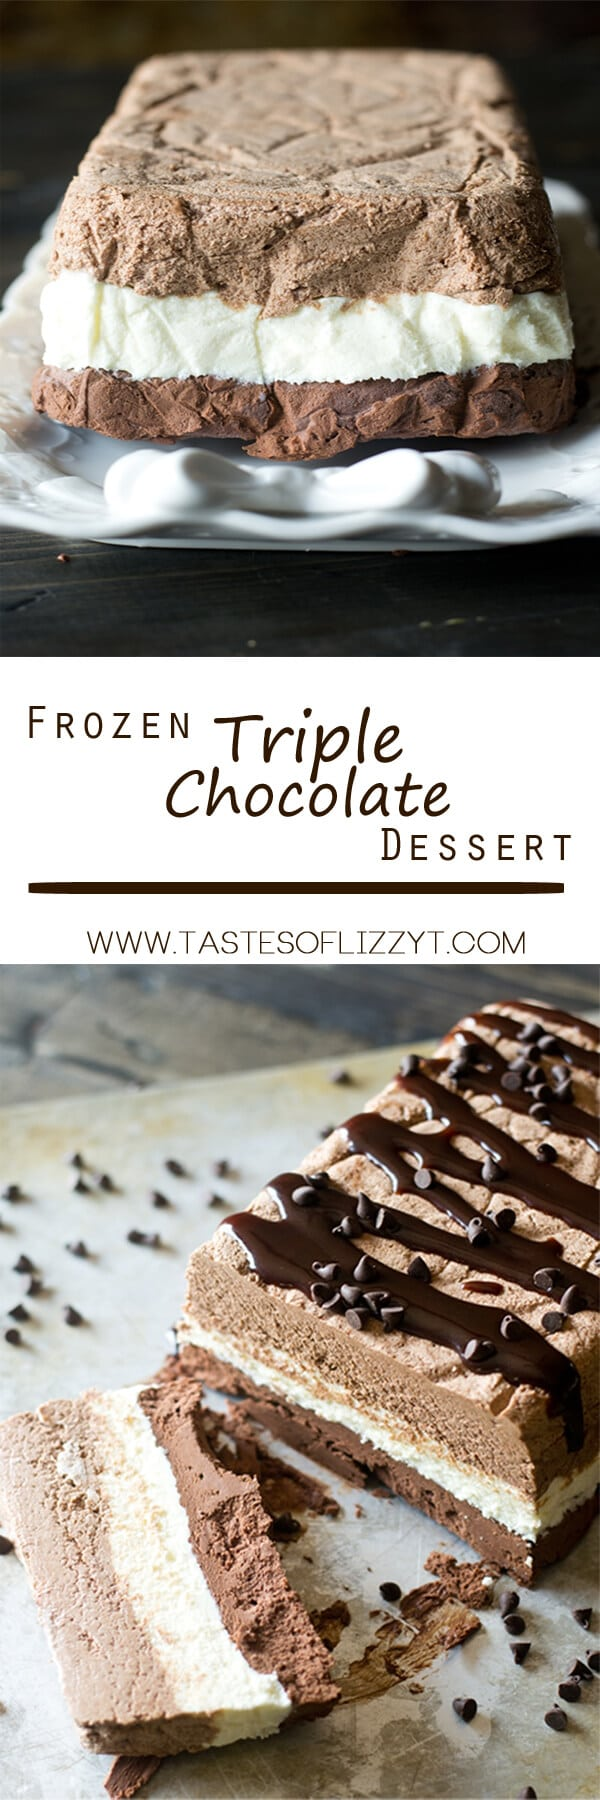 Three layers of whipped chocolate ganache are frozen together in this Triple Chocolate Frozen Dessert. This frosty dessert has an intense chocolate flavor. Triple Chocolate Frozen Dessert {An Easy No Bake Dessert Recipe}